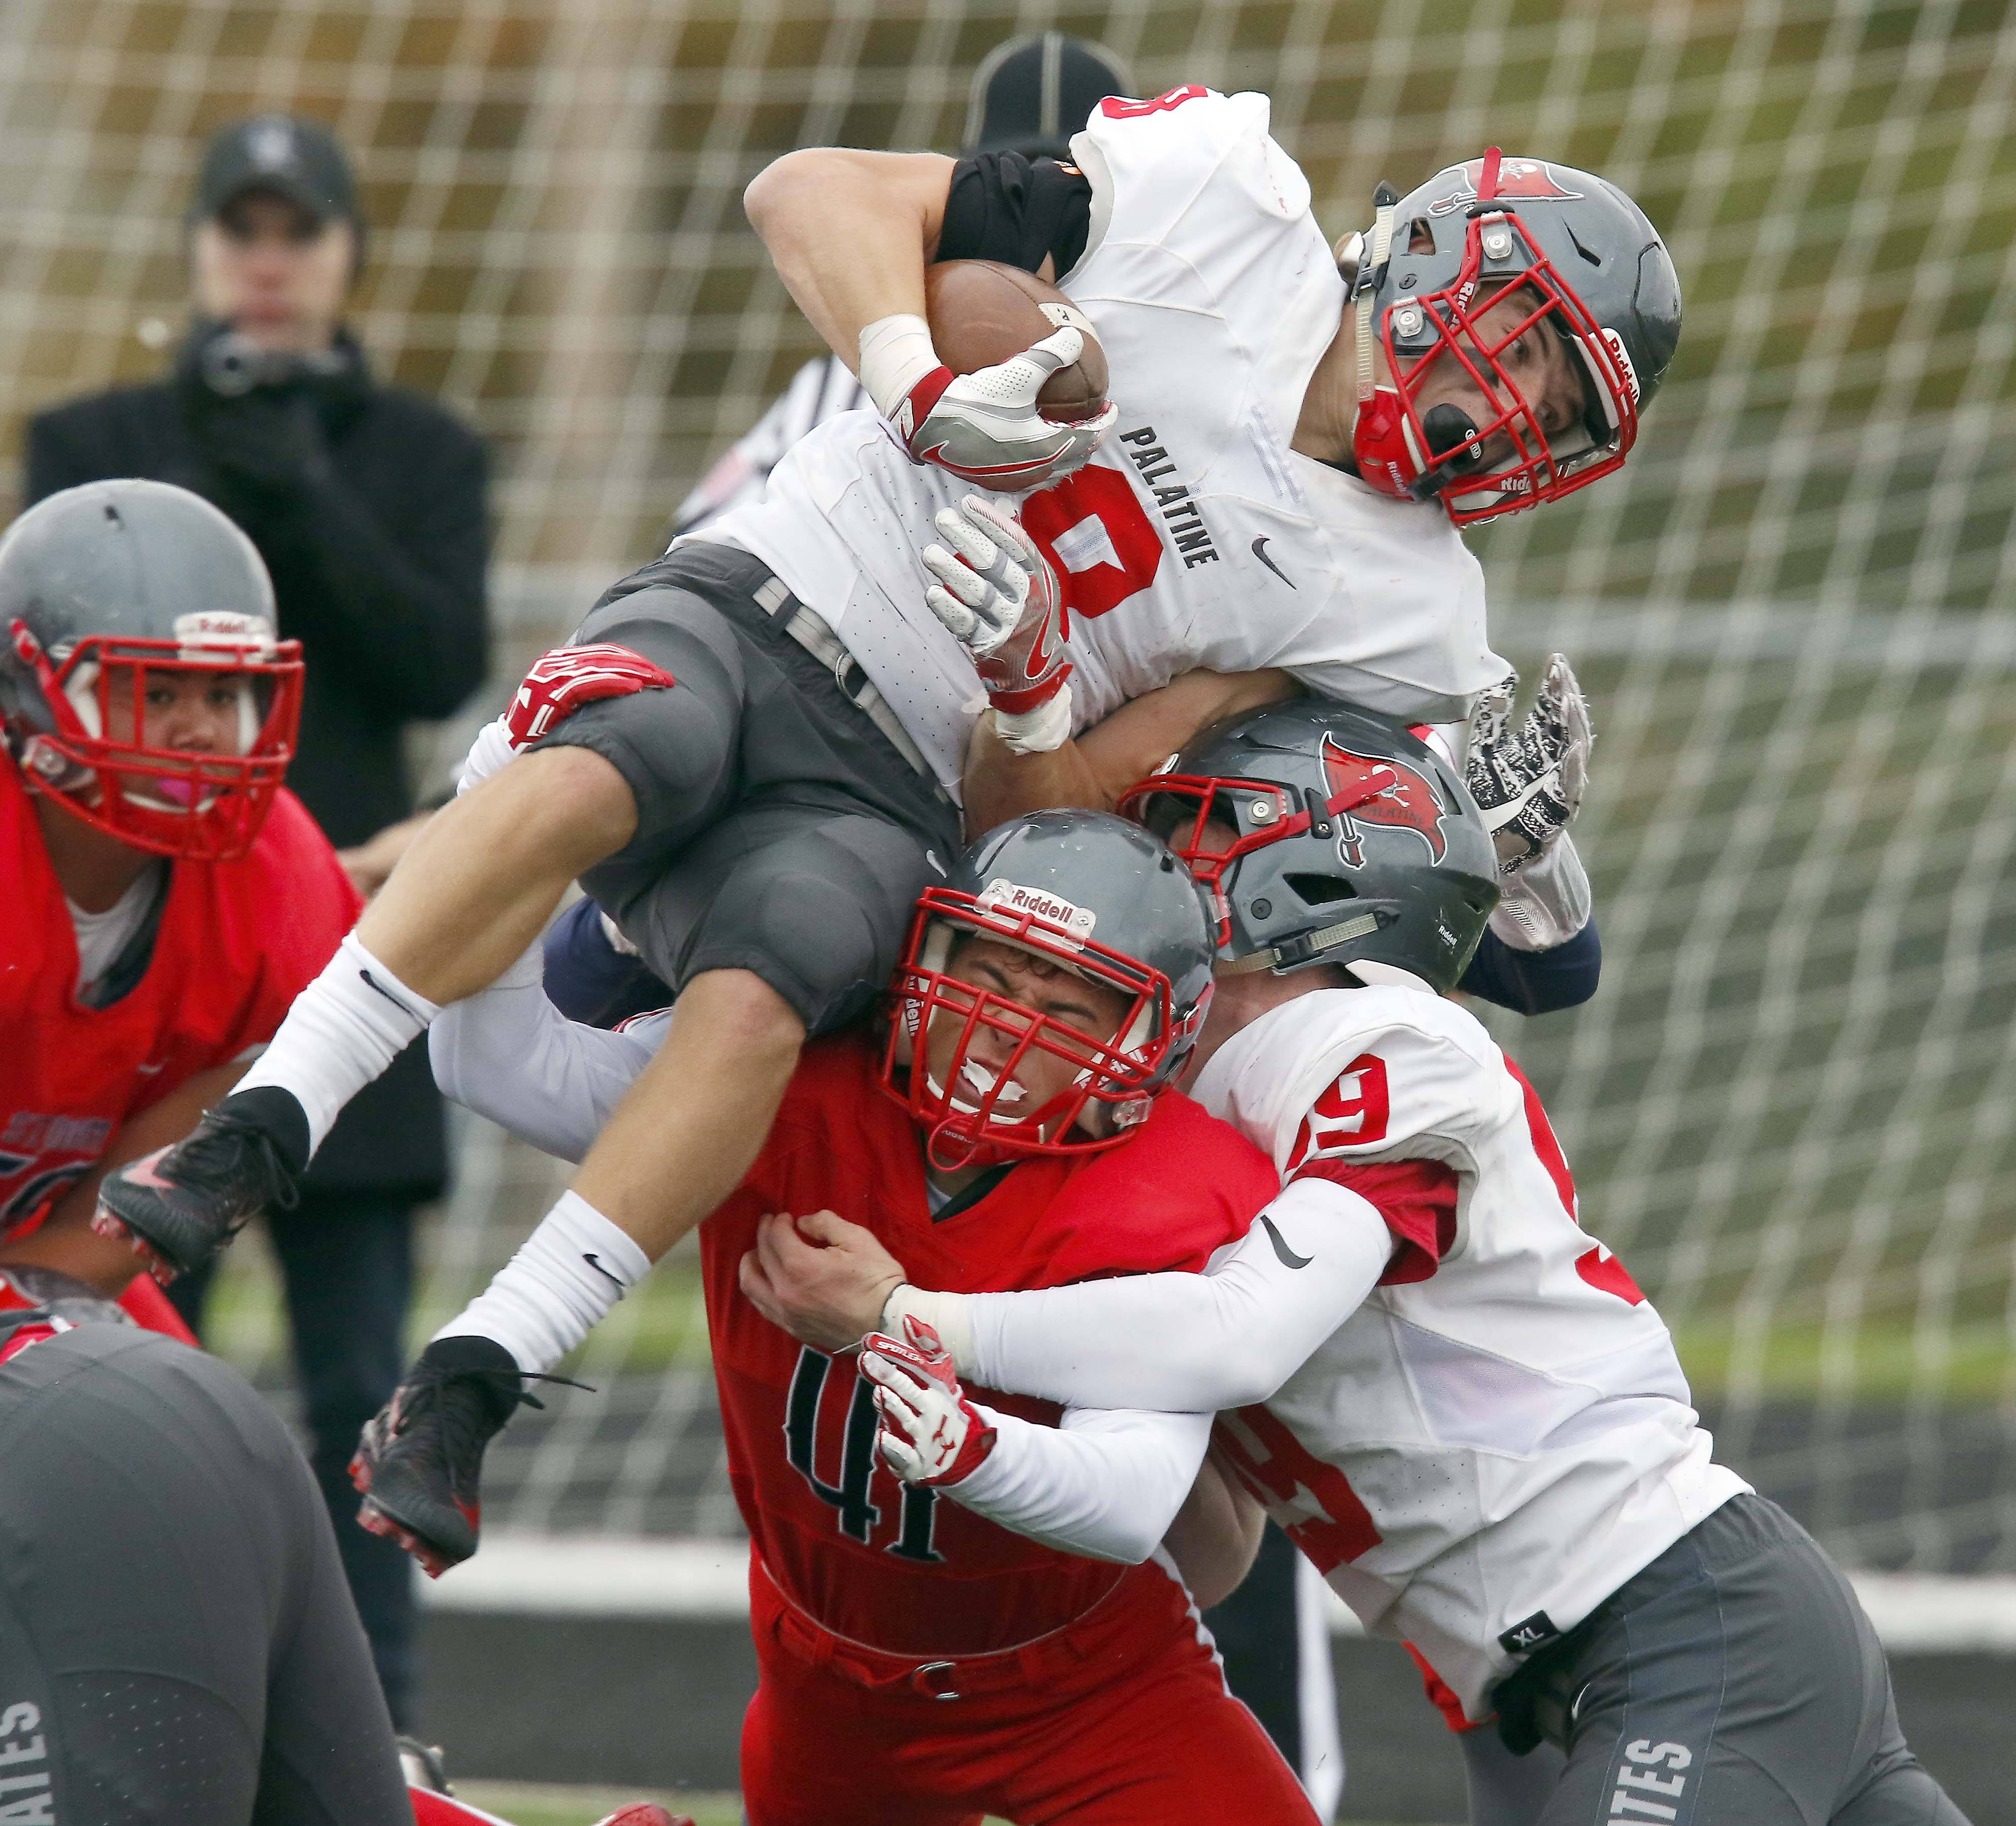 Palatine's Jake Moertl (8) goes up and over South Elgin's Patrick Noworol (41) Saturday during Palatine vs. South Elgin Class 8A football playoffs at Millennium Field in Streamwood.